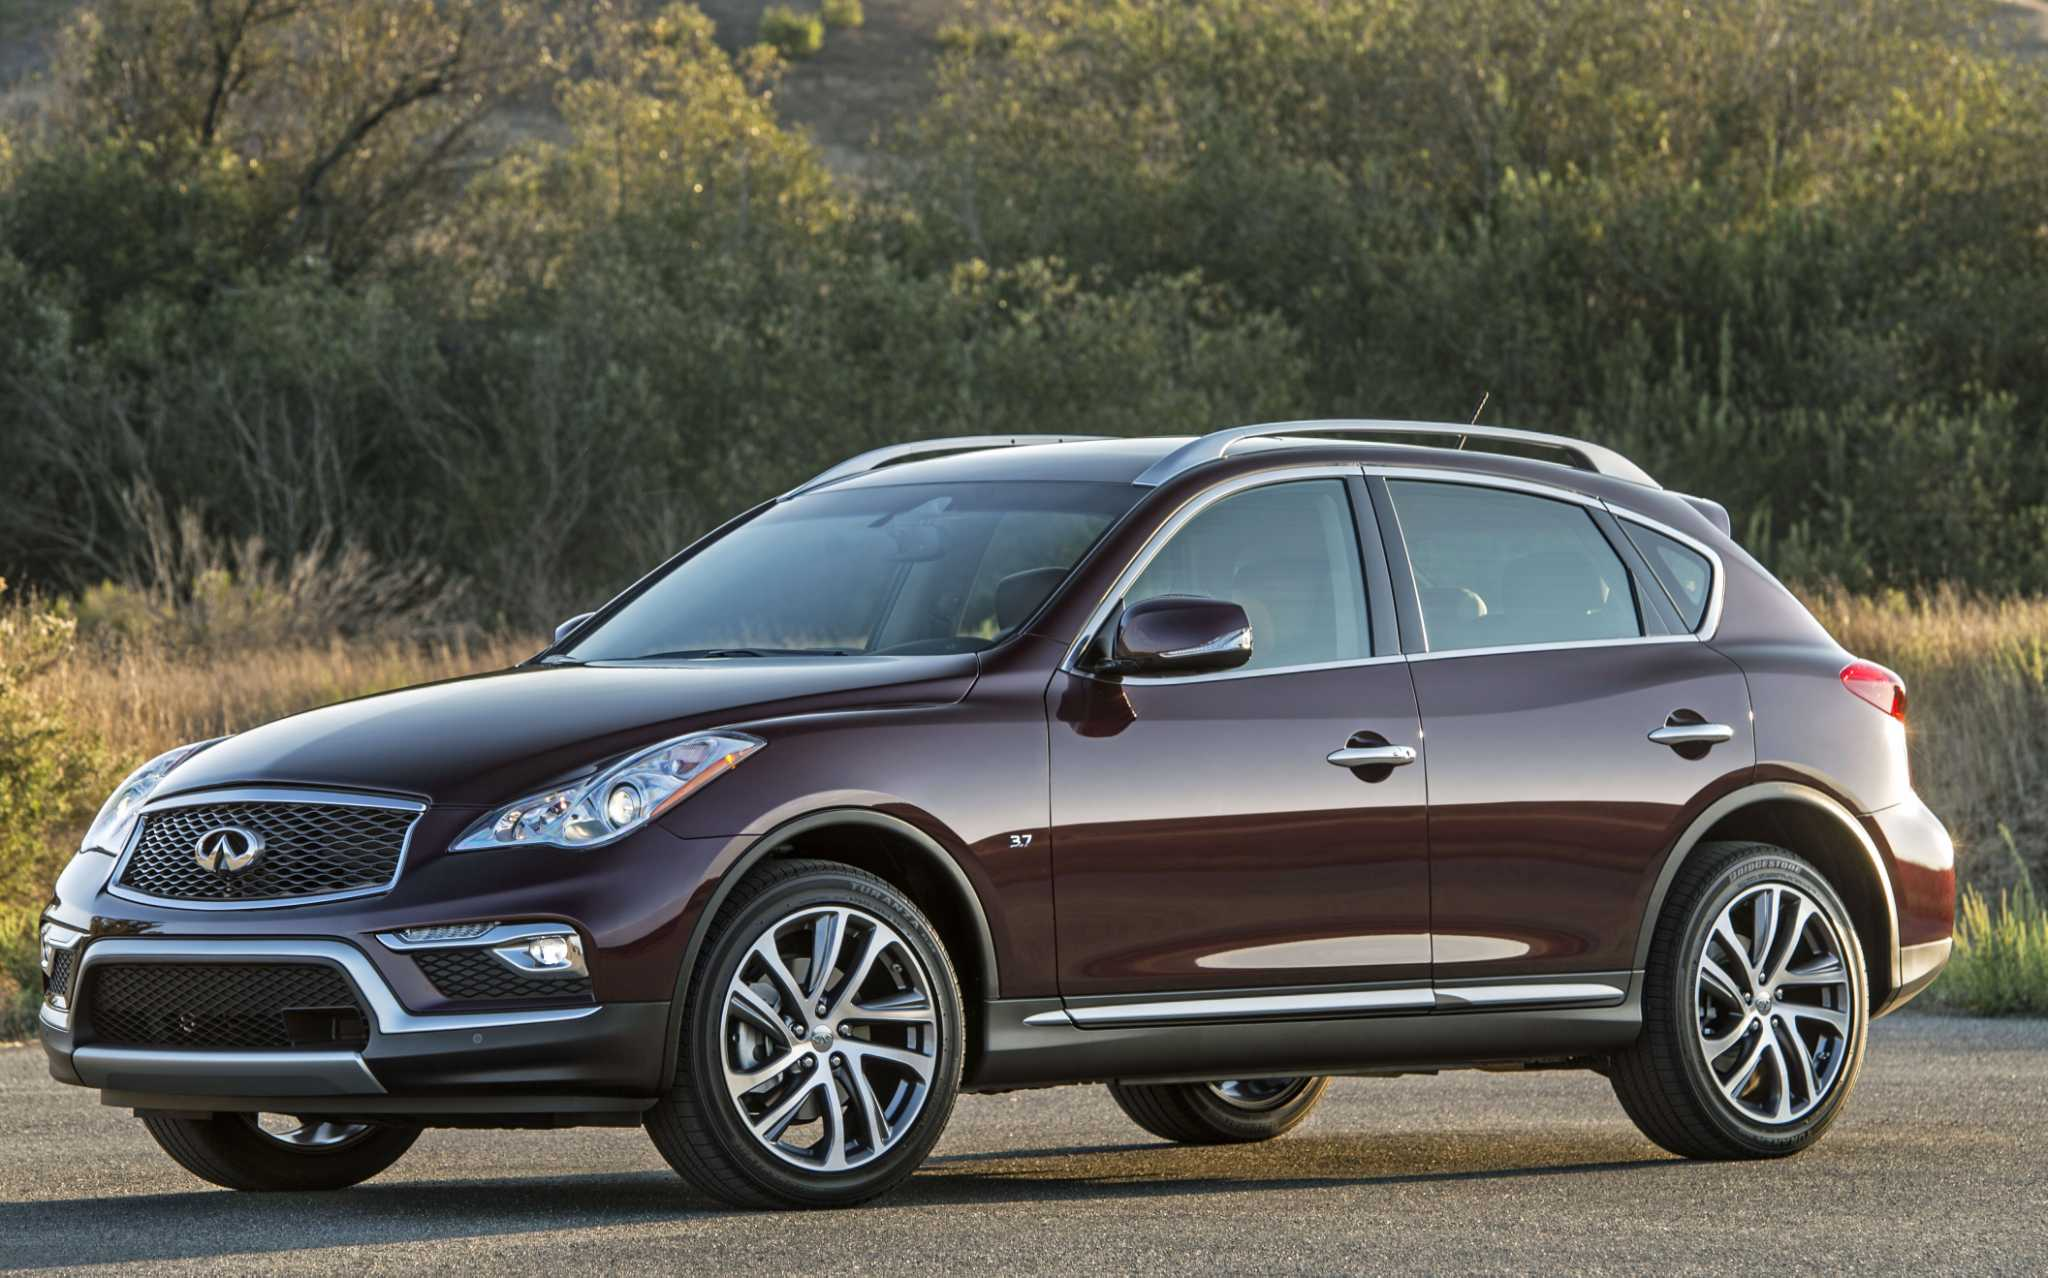 Infiniti QX50 compact crossover returns for 2017 with prices beginning at $34,650